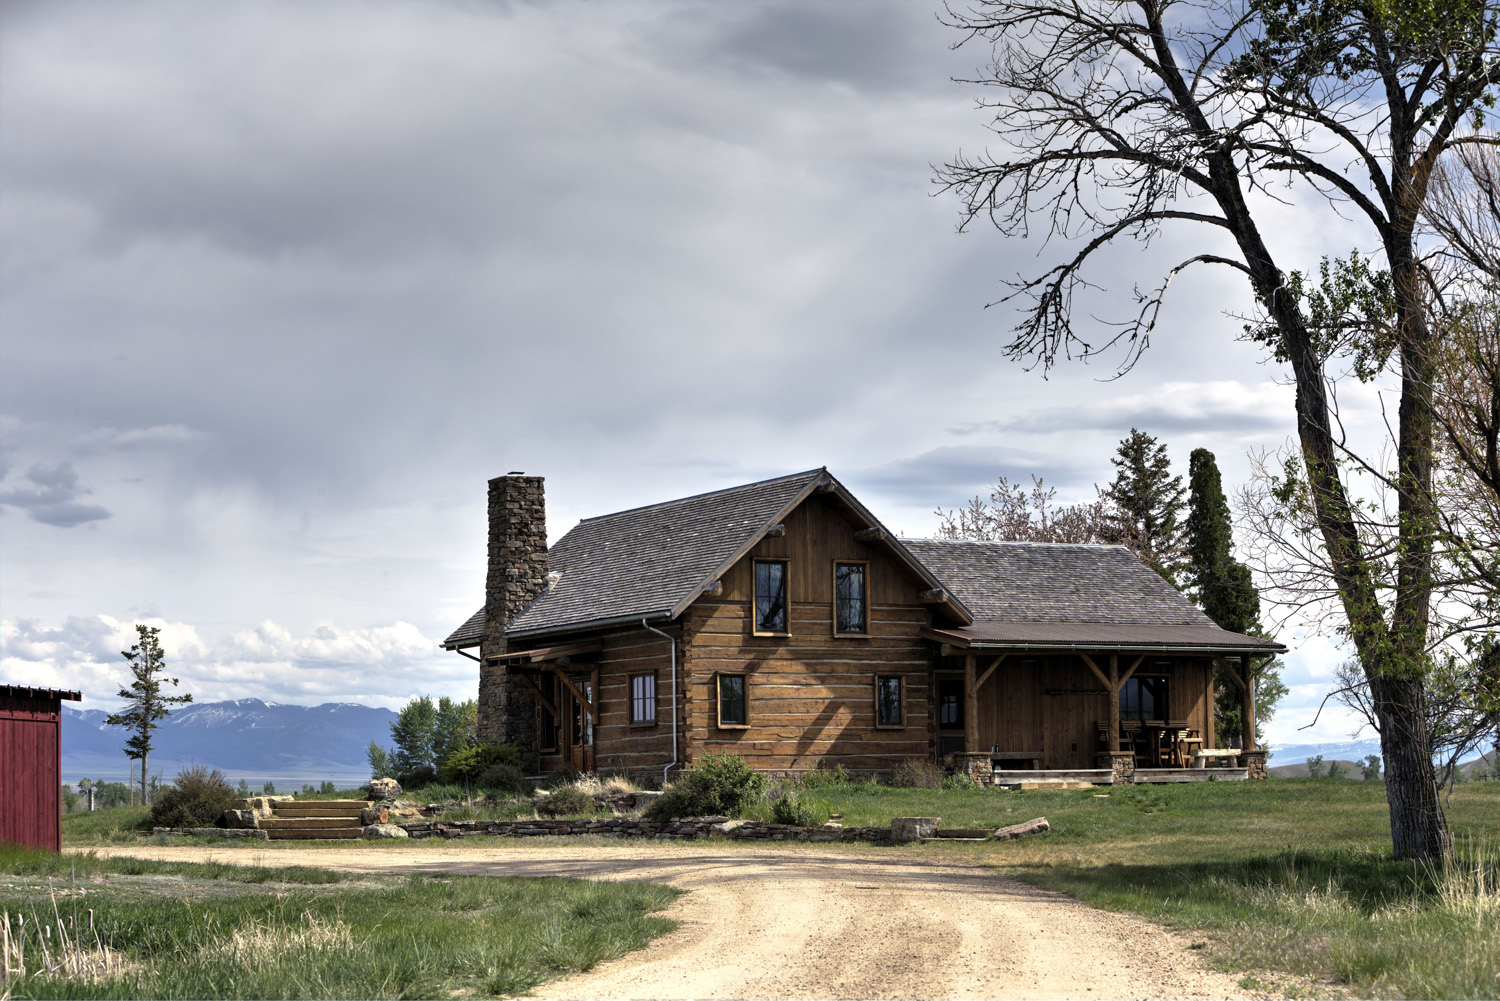 House from driveway.jpg